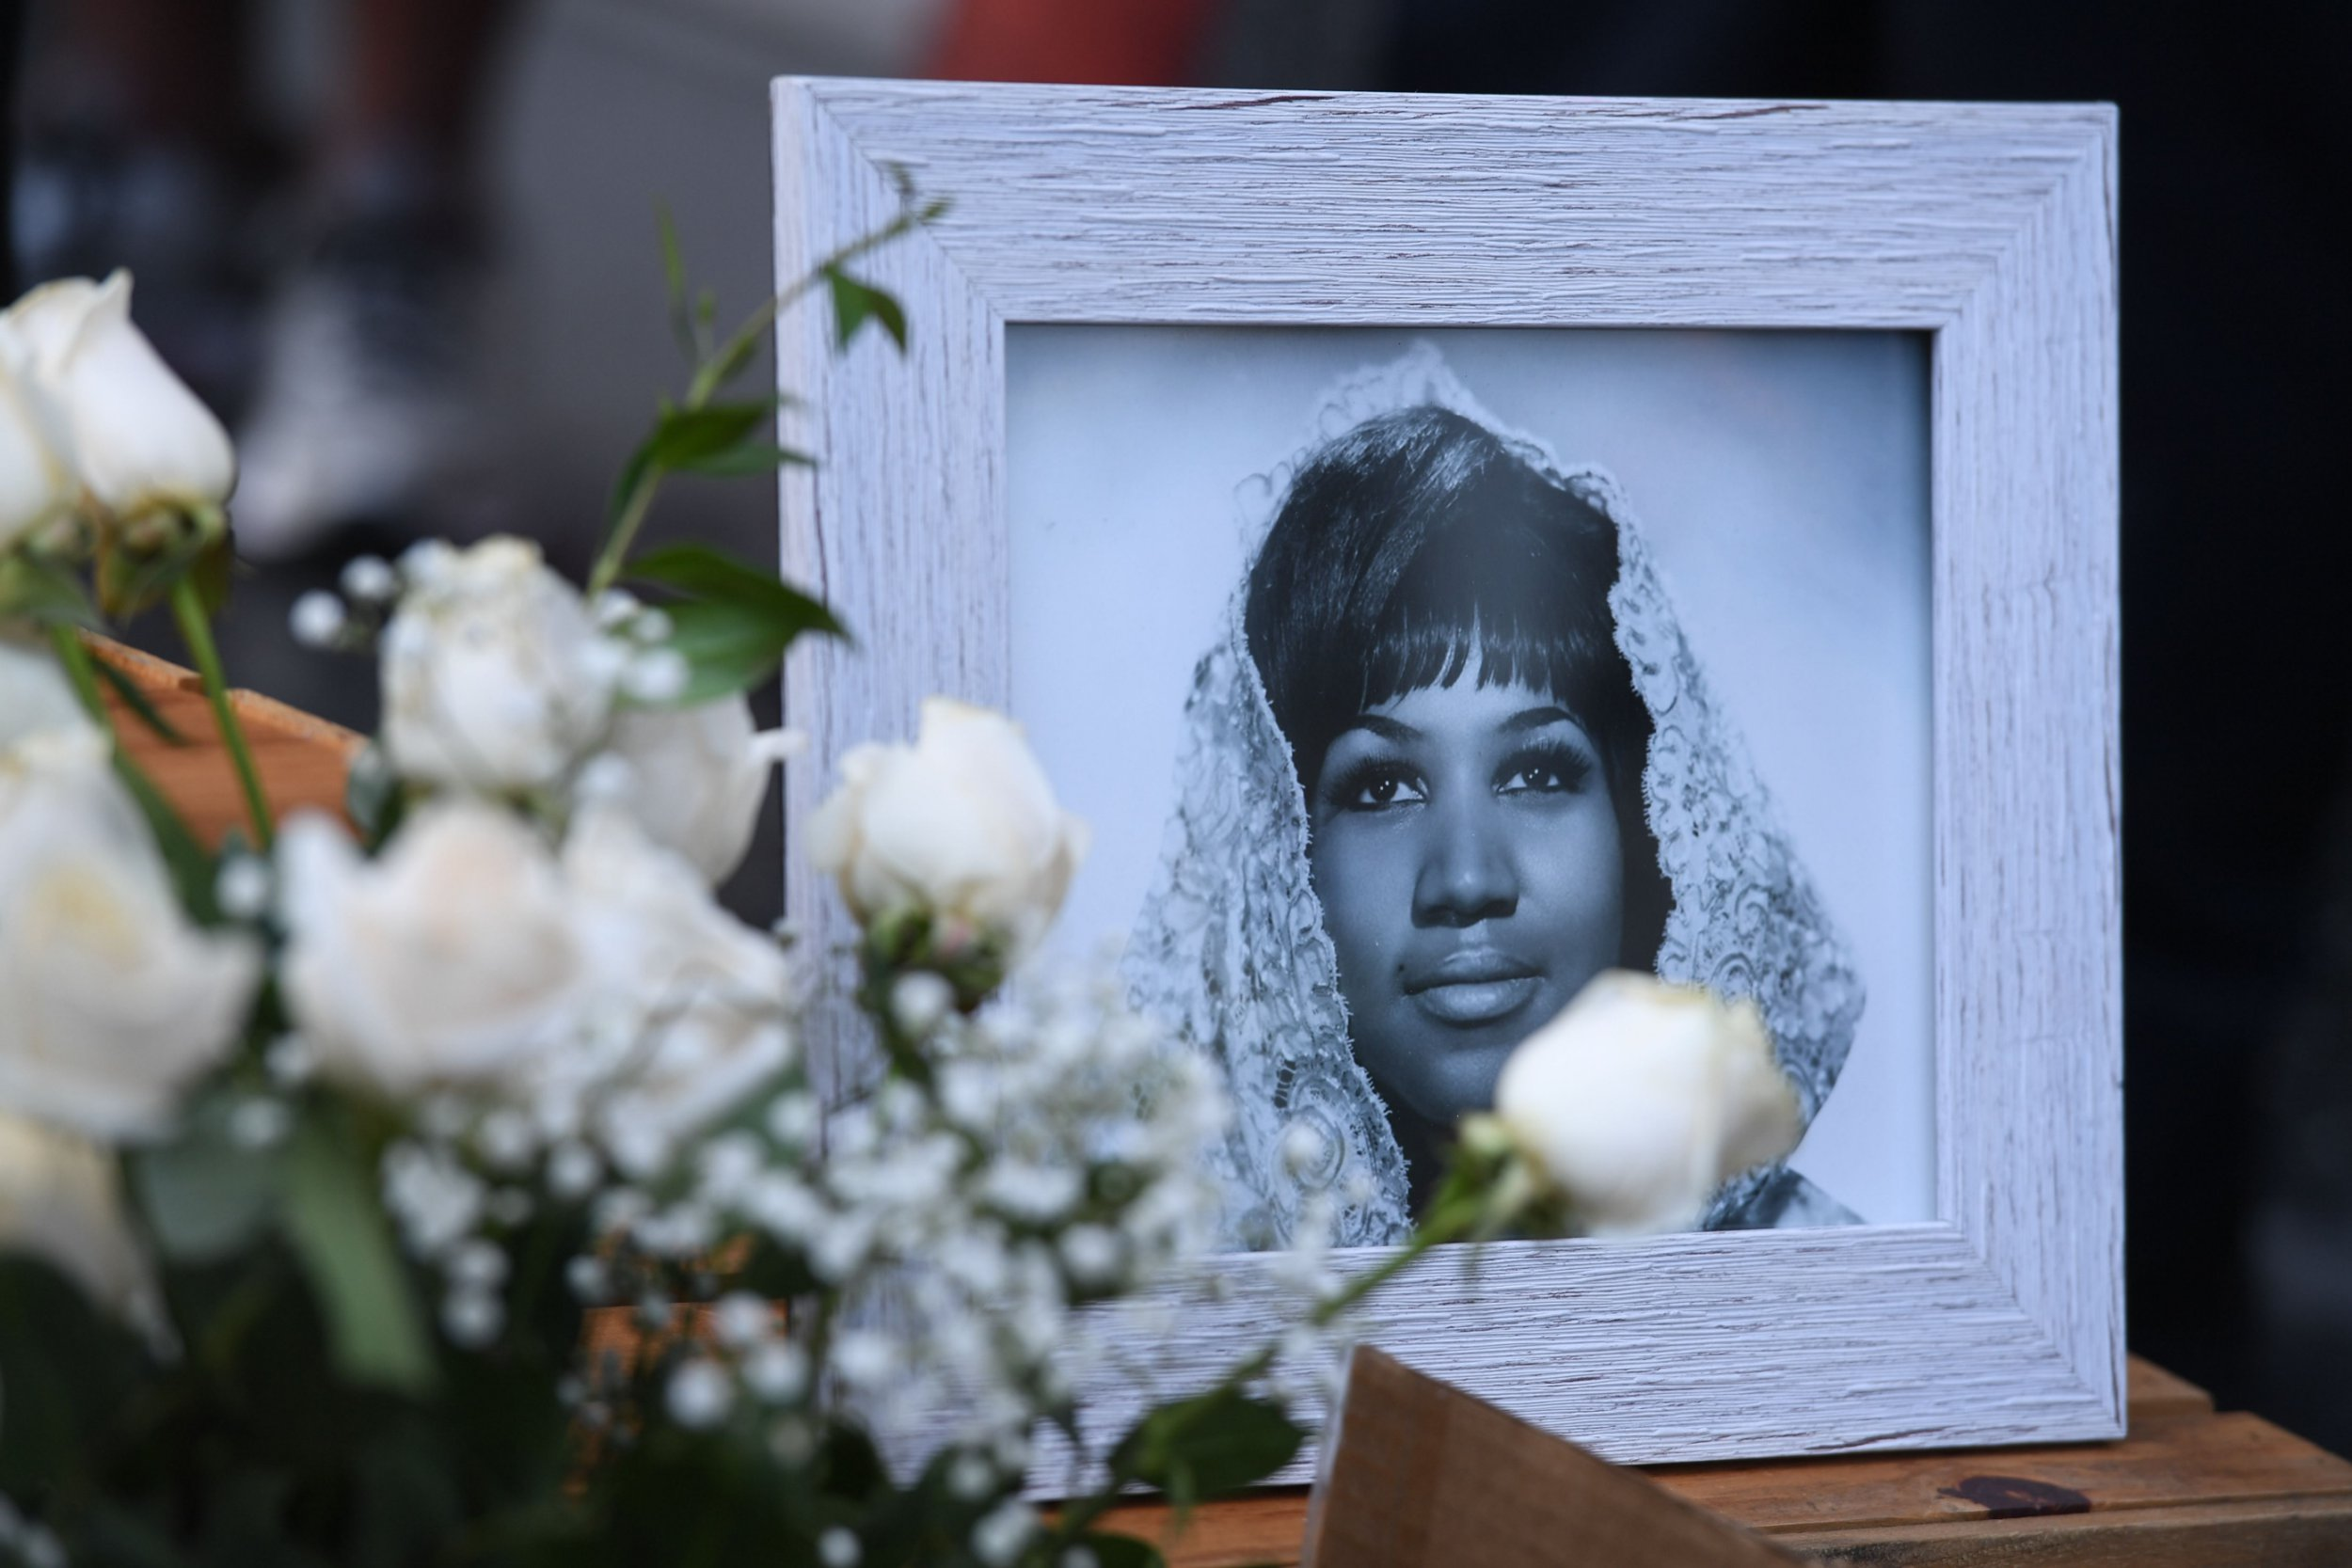 """Flowers and tributes are placed on the Star for Aretha Franklin on the Hollywood Walk of Fame in Hollywood, California, August 16, 2018, following the death of music icon, legendary singer and """"Queen of Soul"""" loved by millions whose history-making career spanned six decades. - Franklin, who died at age 76 on August 16, 2018, influenced generations of female singers with unforgettable hits including """"Respect"""" (1967), """"Natural Woman"""" (1968) and """"I Say a Little Prayer"""" (1968). She passed away at home in Detroit from advanced pancreatic cancer. (Photo by Mark RALSTON / AFP)MARK RALSTON/AFP/Getty Images"""